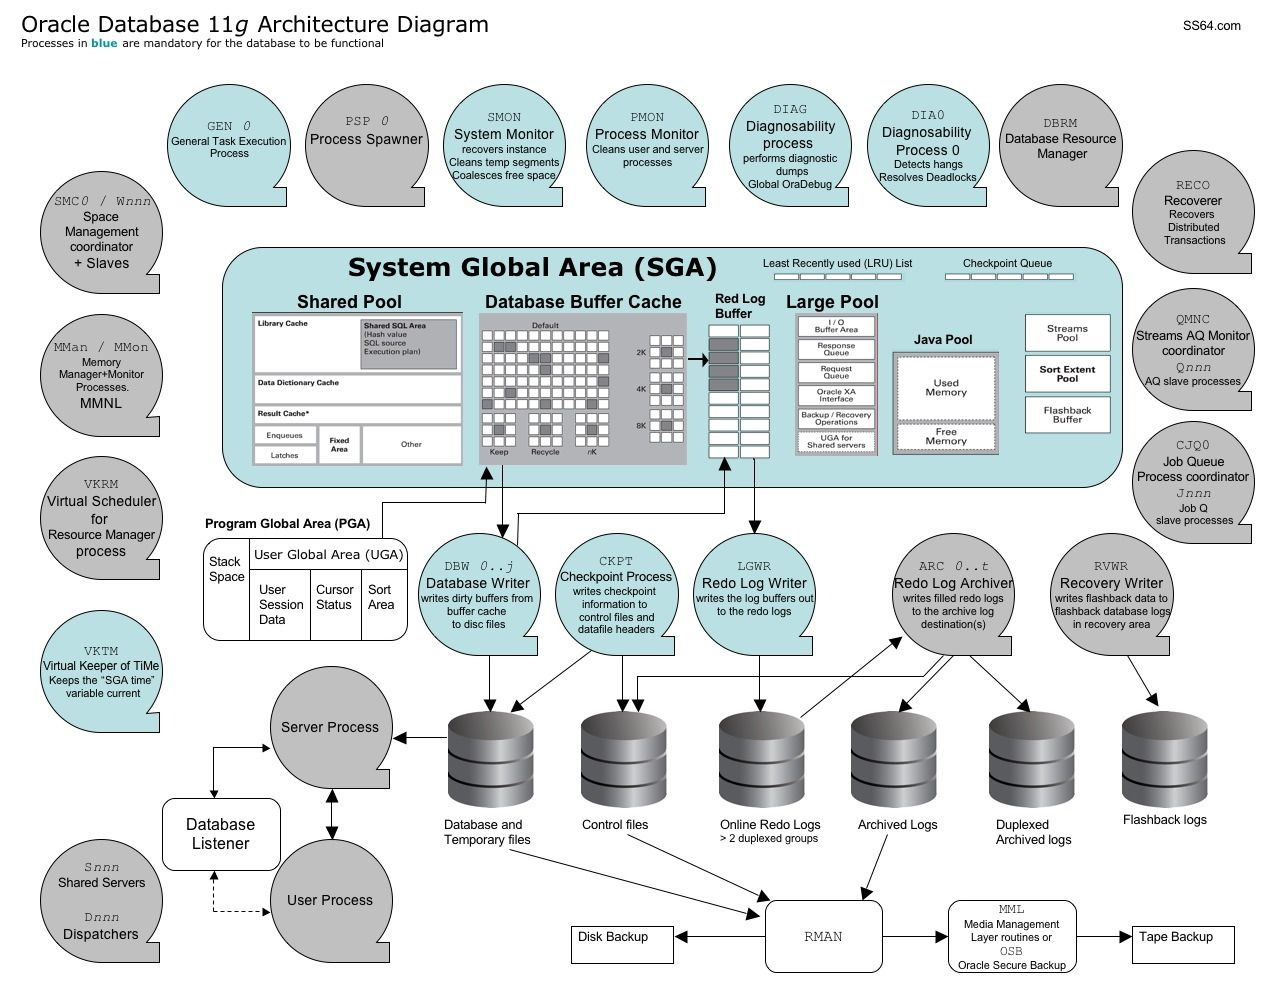 #Oracle #database 11g Architecture Diagram